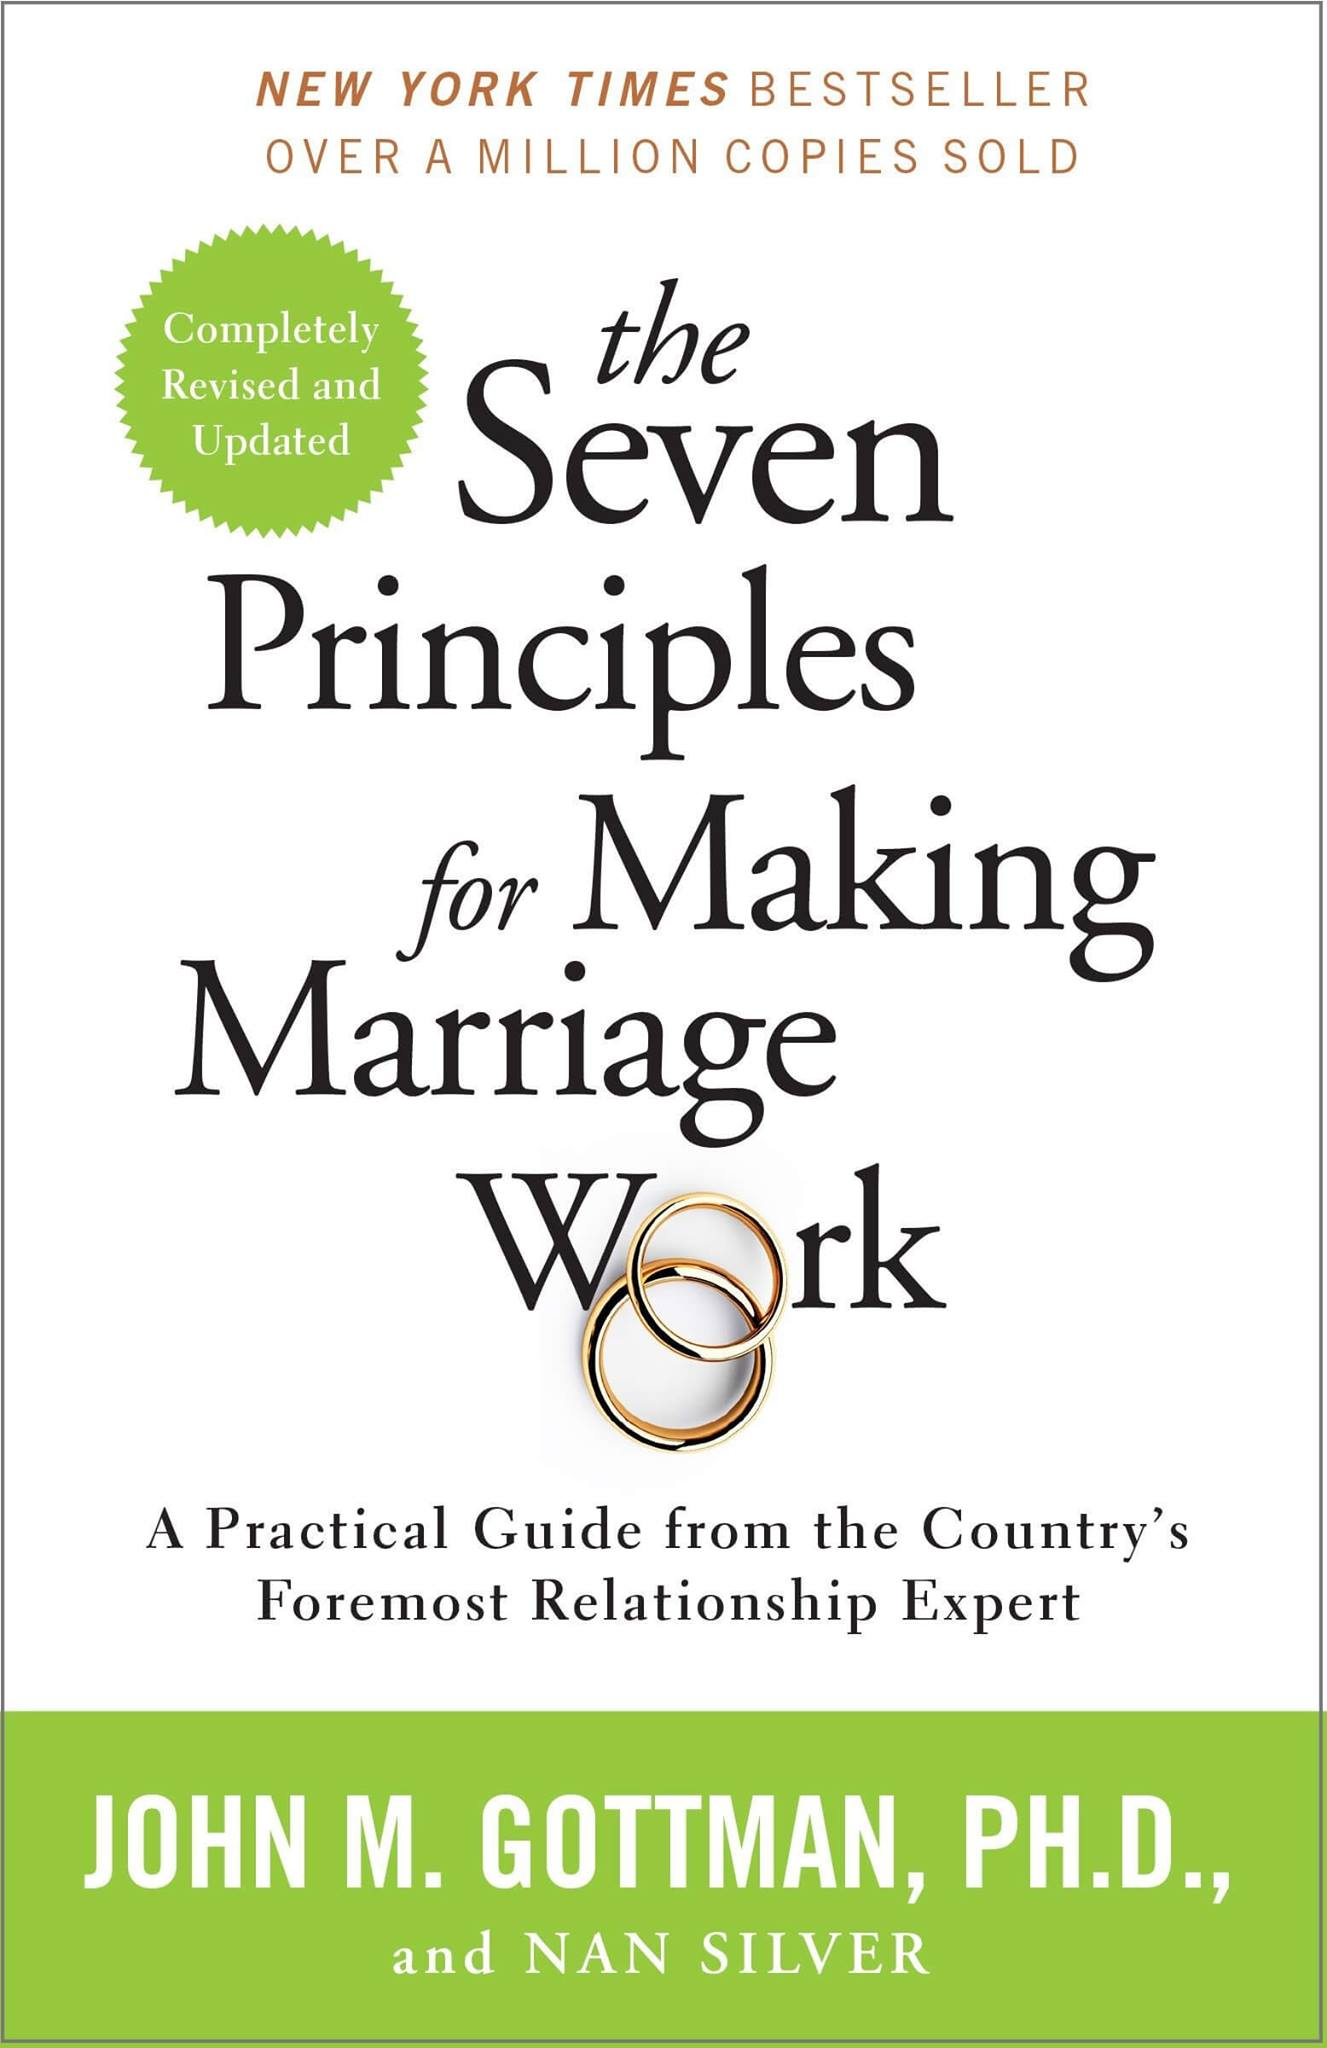 The Seven Principles for Making Marriage Work by John M. Gottman